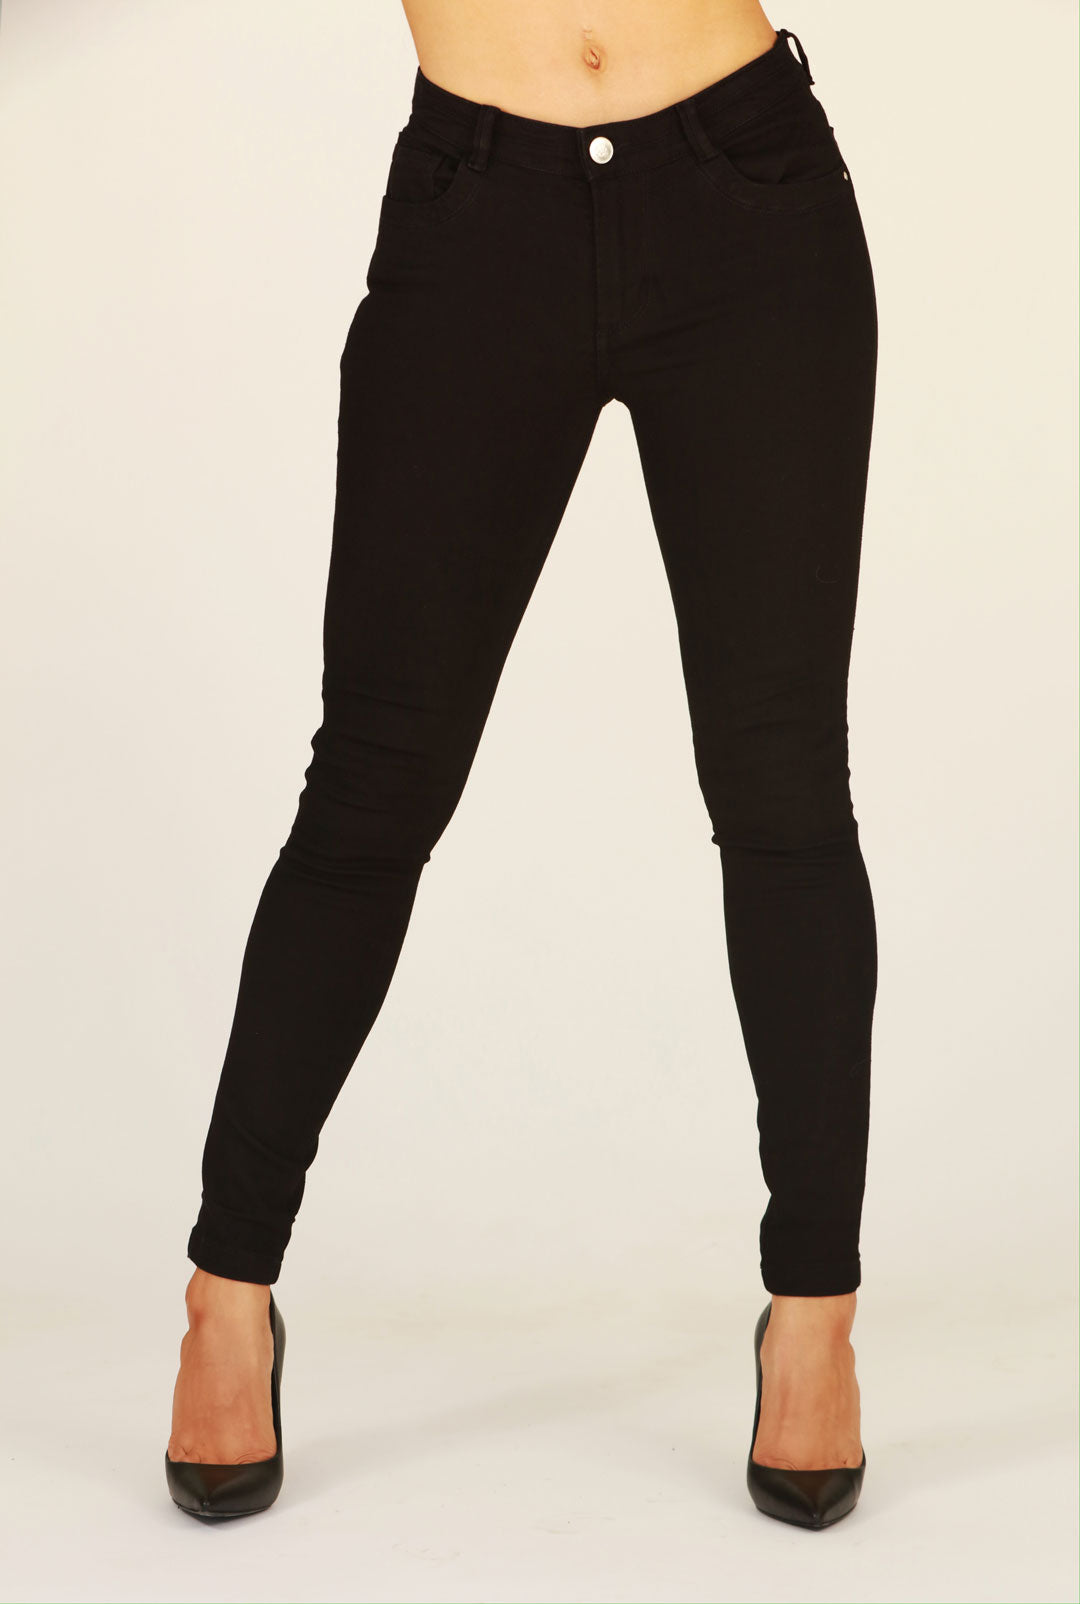 Ade Black Jeans